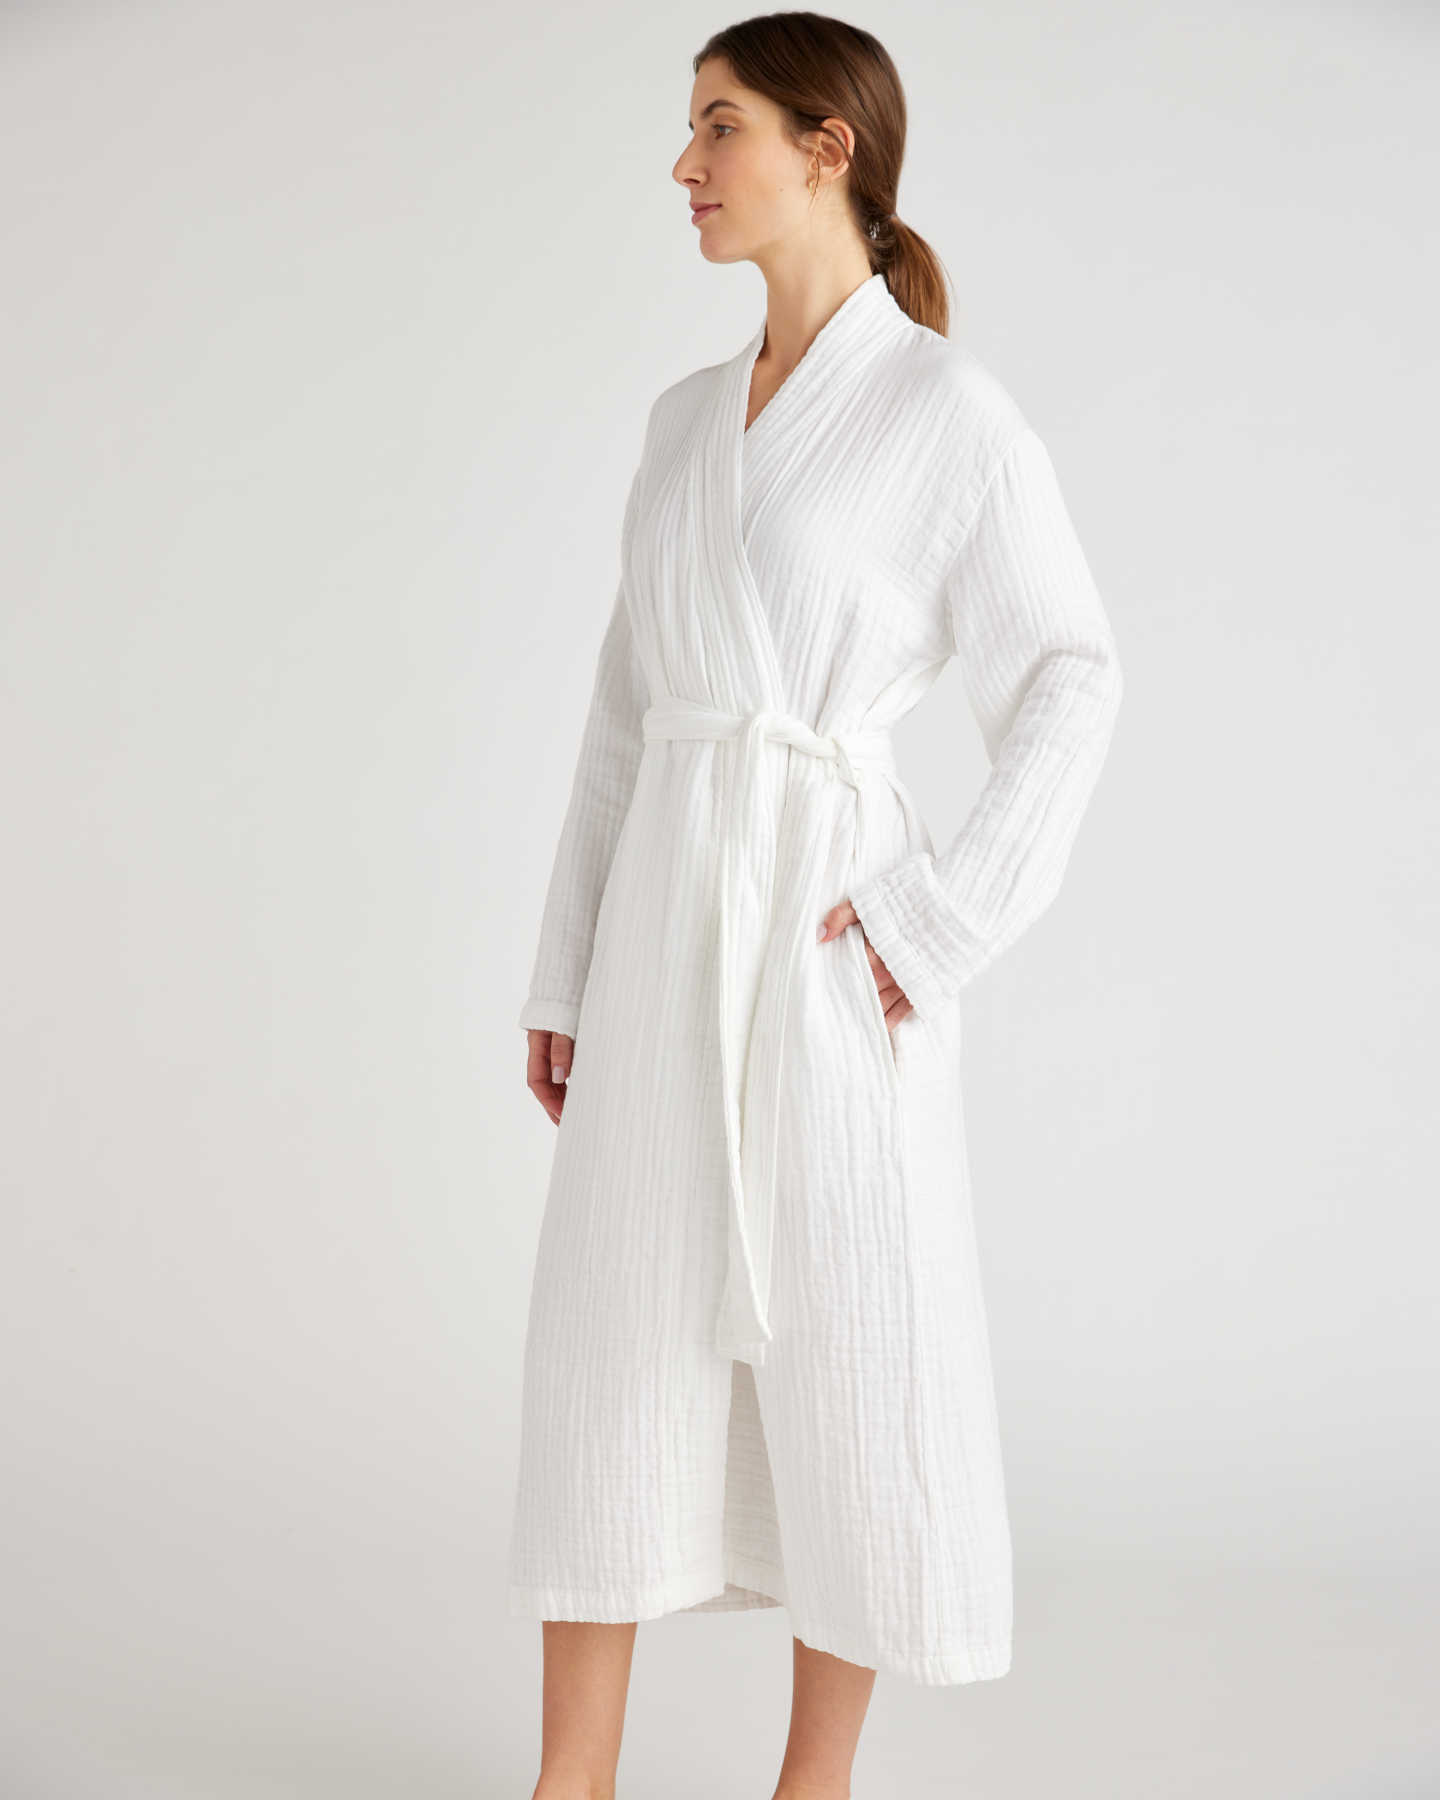 Organic Turkish Cotton Gauze Robe - White - 1